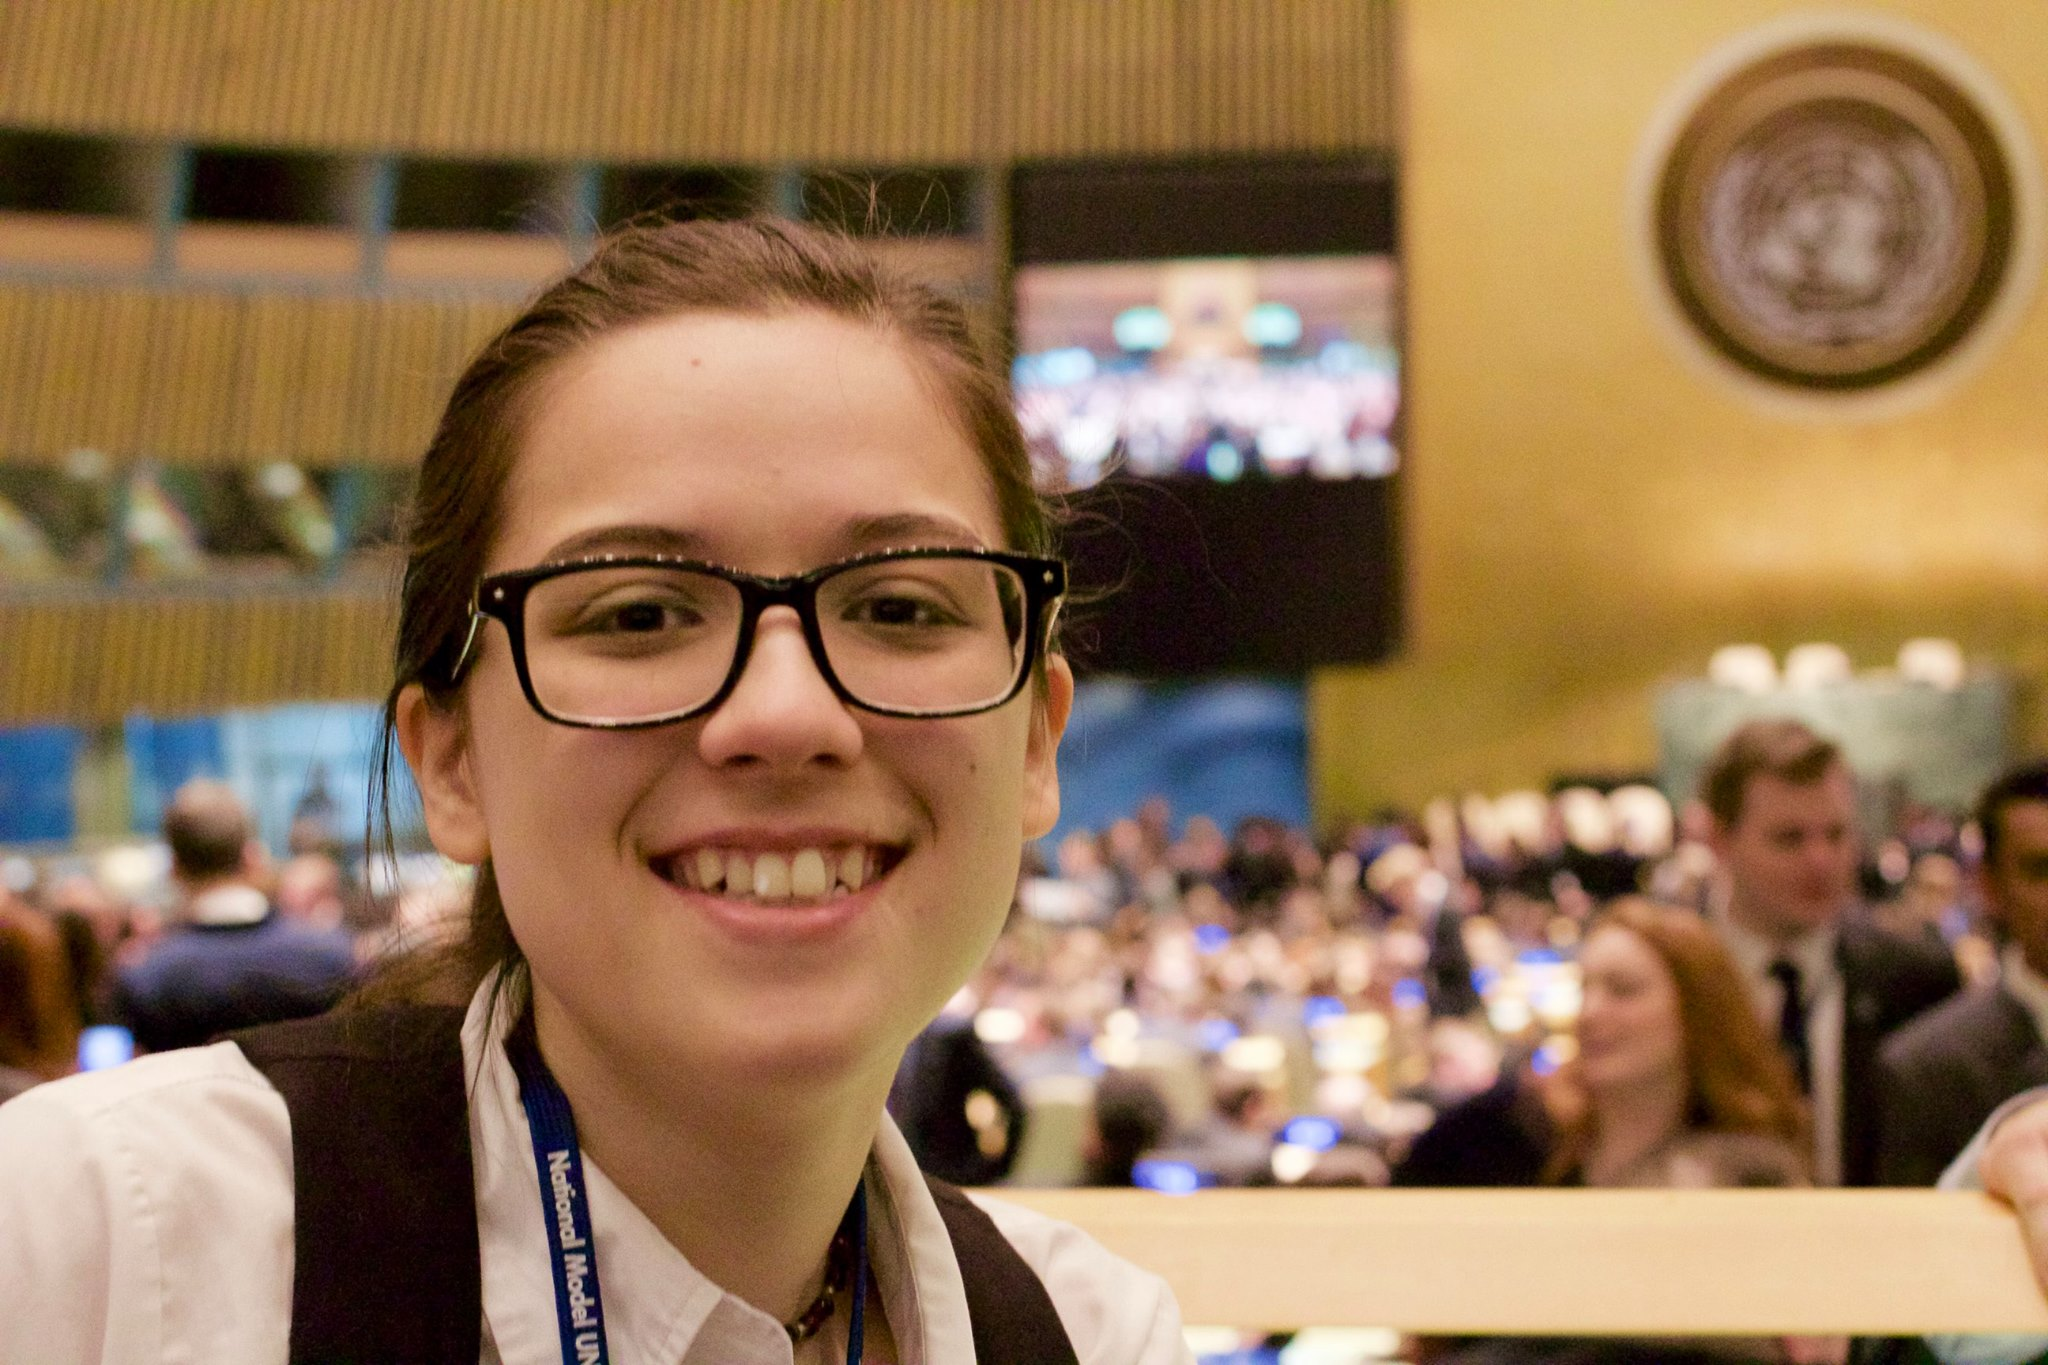 At the United Nations General Assembly